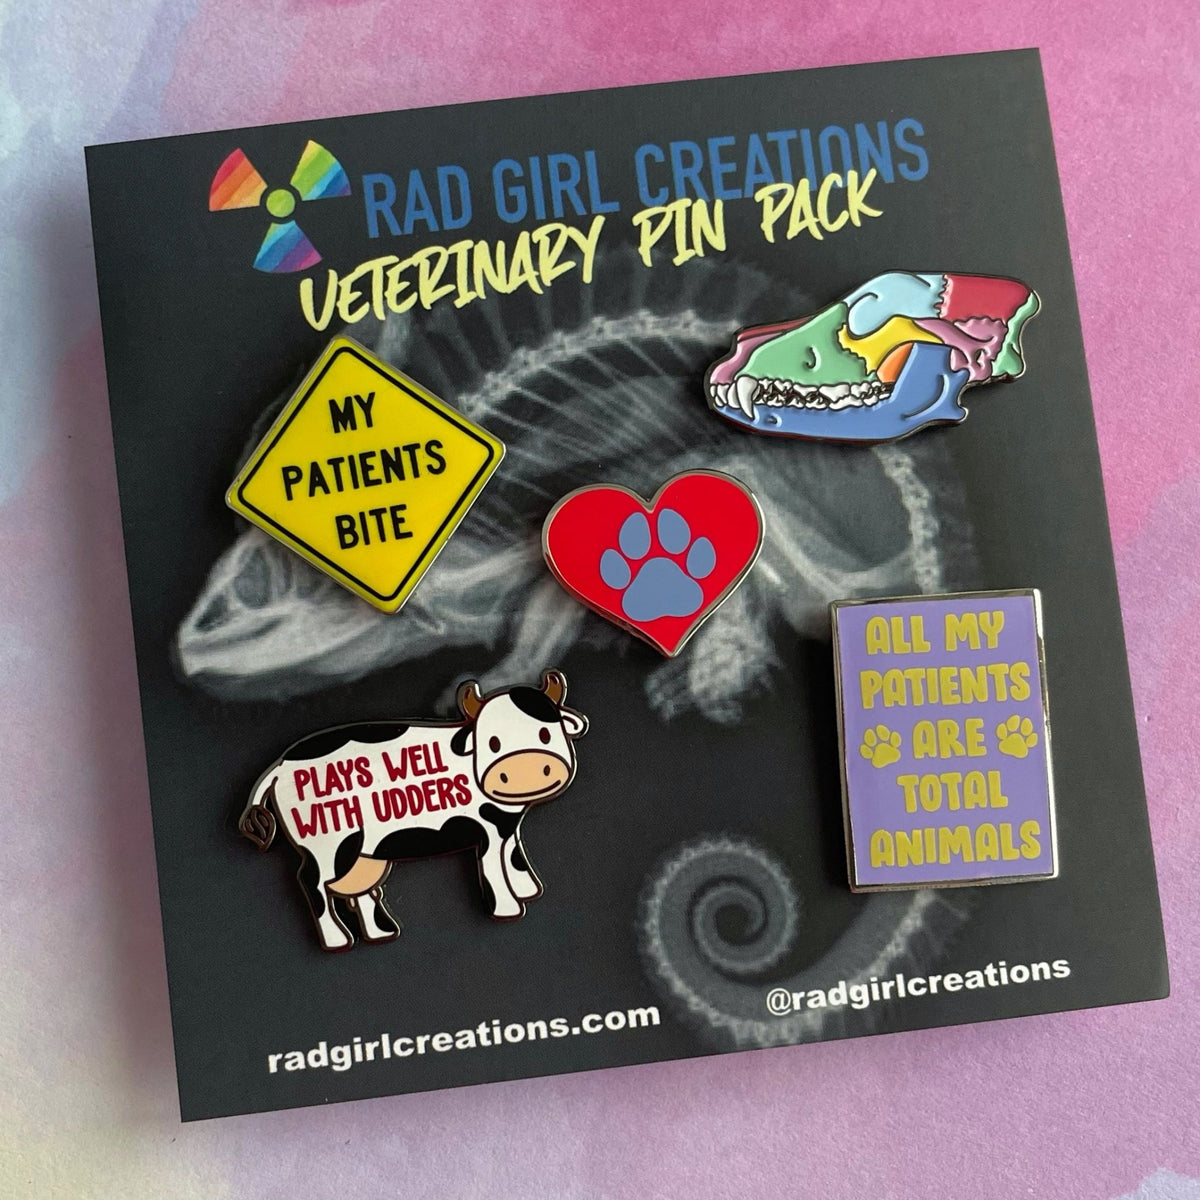 Veterinary Pin Pack - Rad Girl Creations